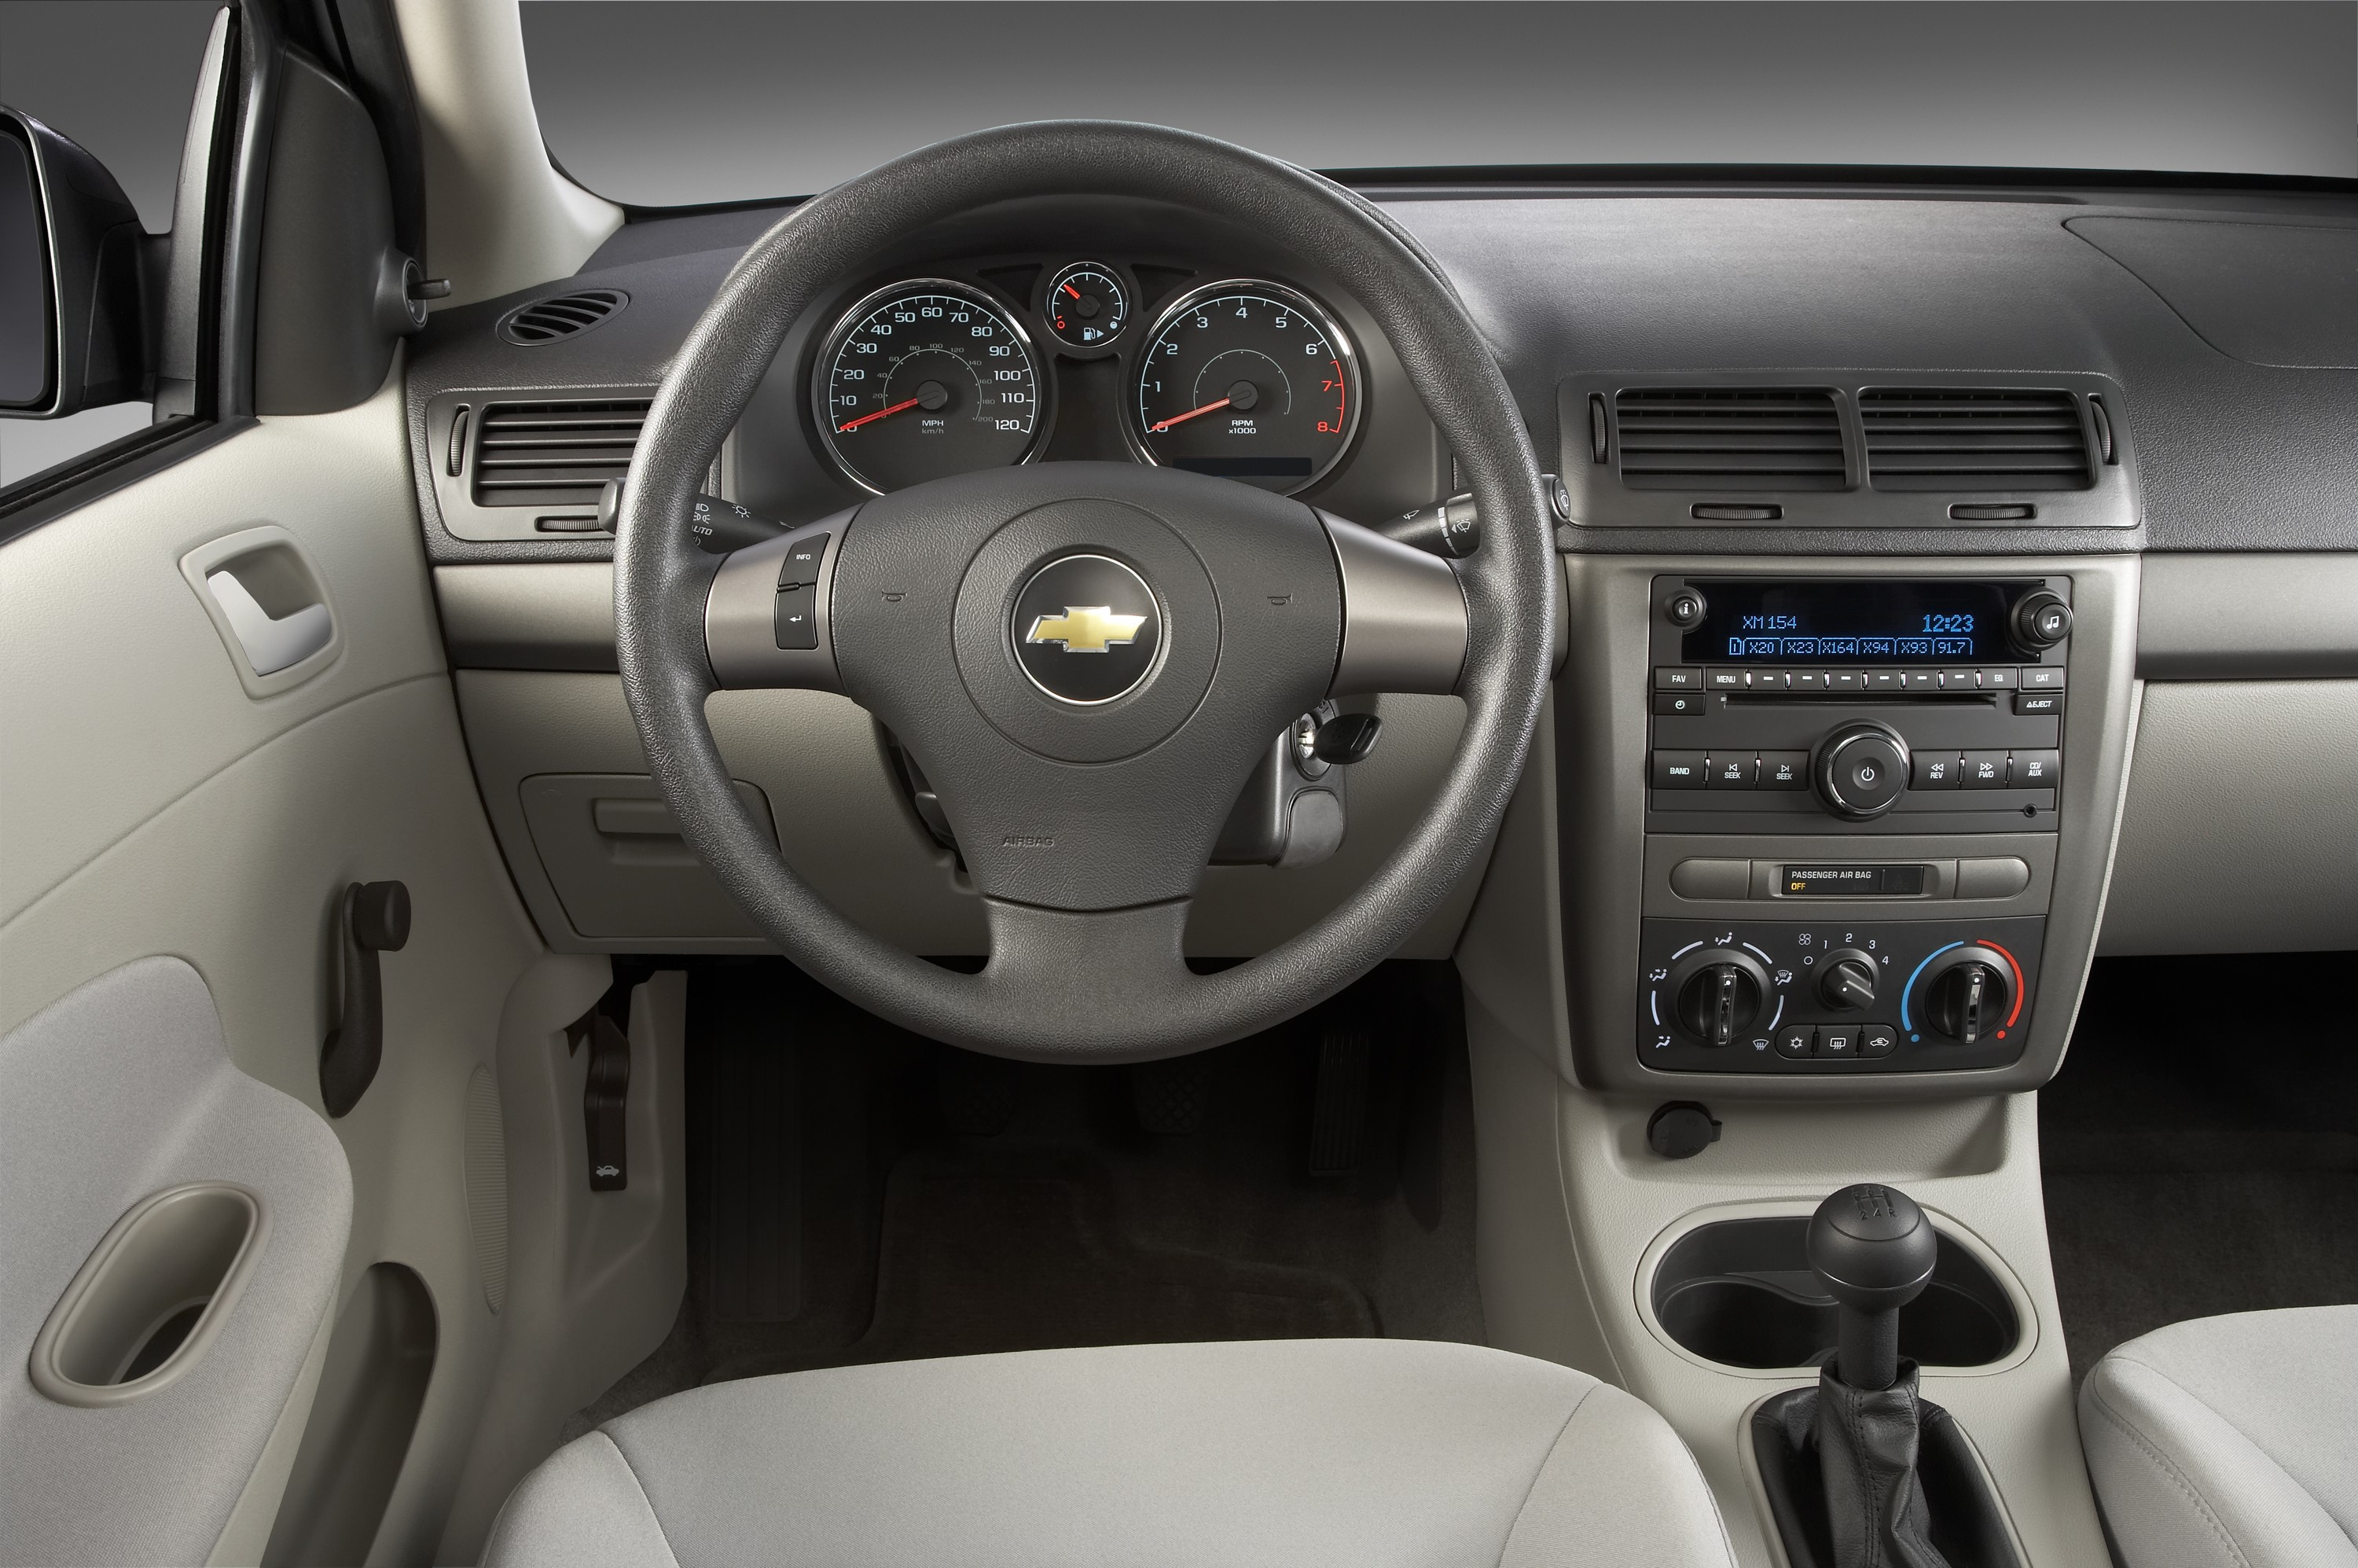 2007 Chevy Cobalt Engine Diagram 2010 Chevrolet Cobalt S Informations Articles Bestcarmag Of 2007 Chevy Cobalt Engine Diagram